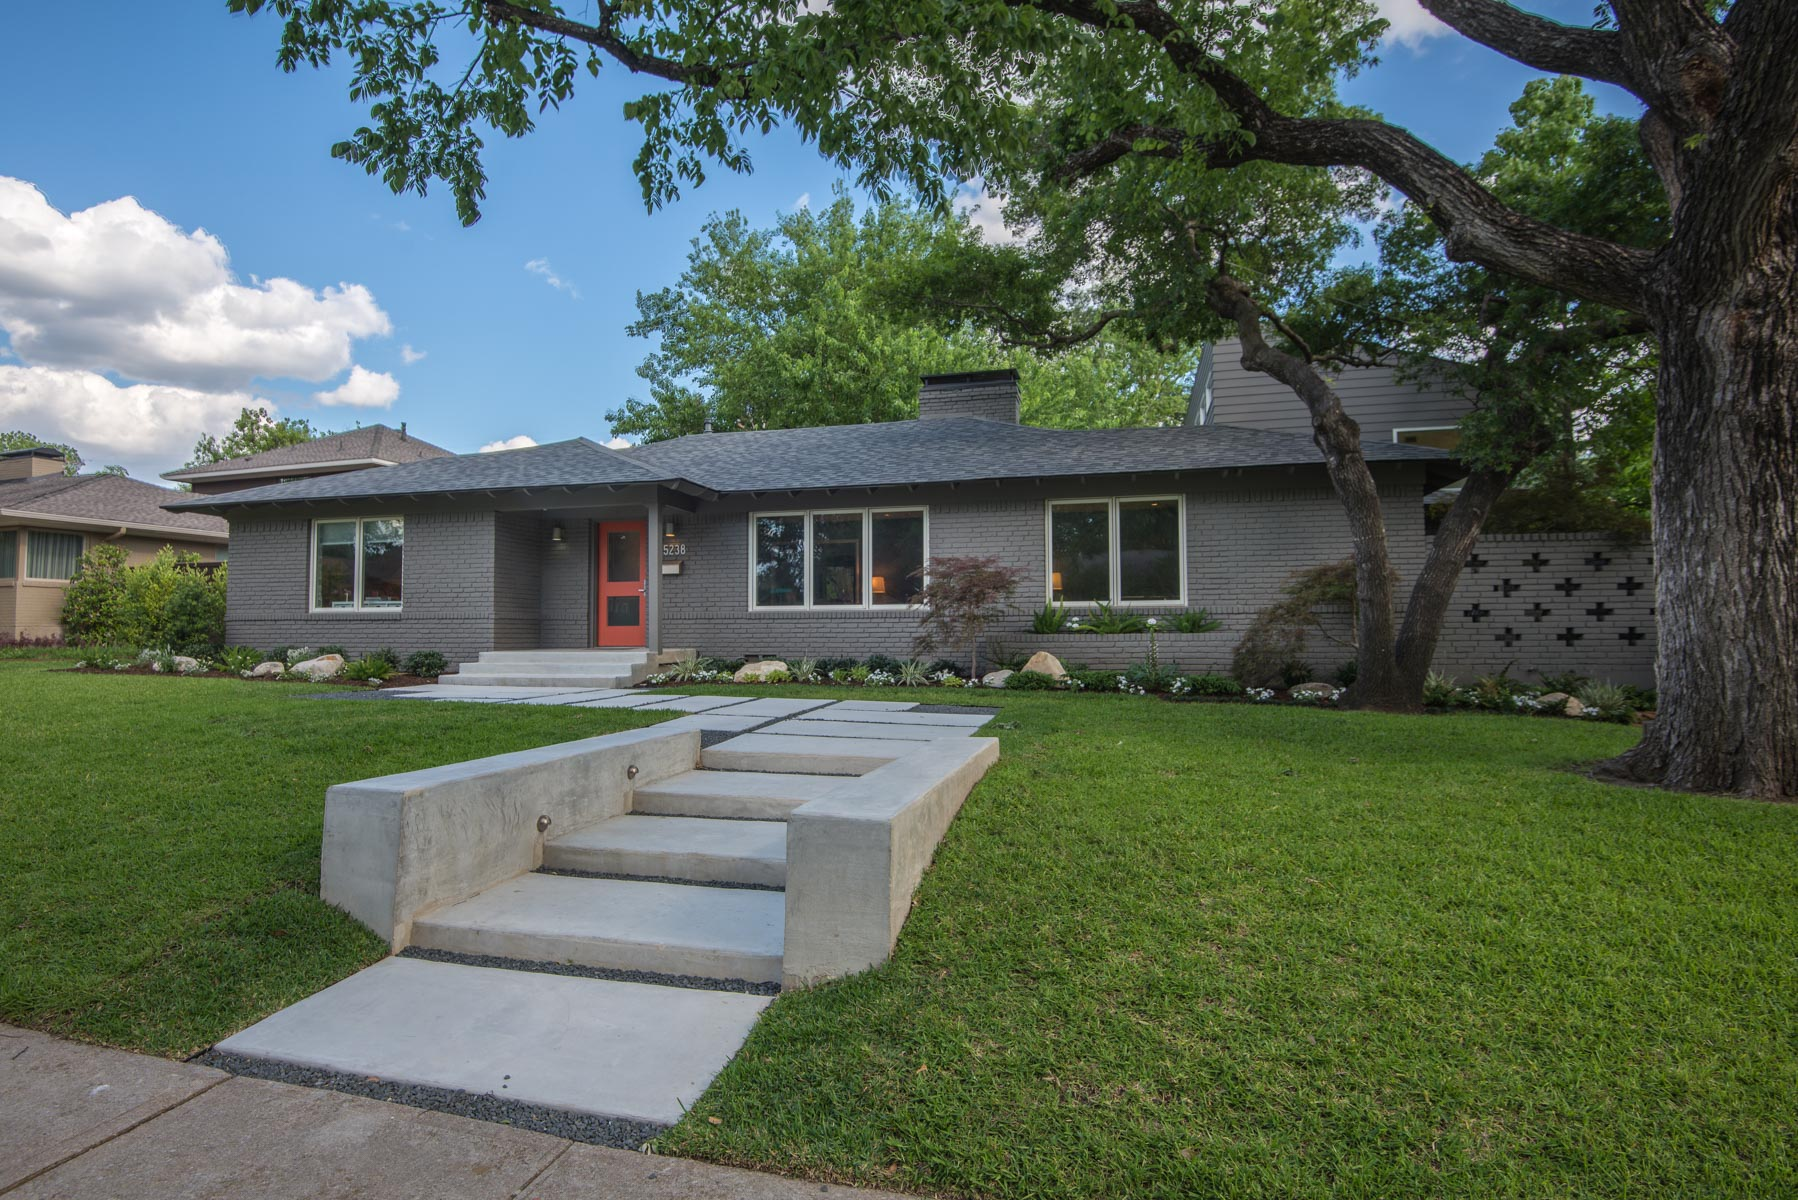 Single Family Home for Sale at Mid-Century Modern 5238 Edmondson Ave Dallas, Texas, 75209 United States